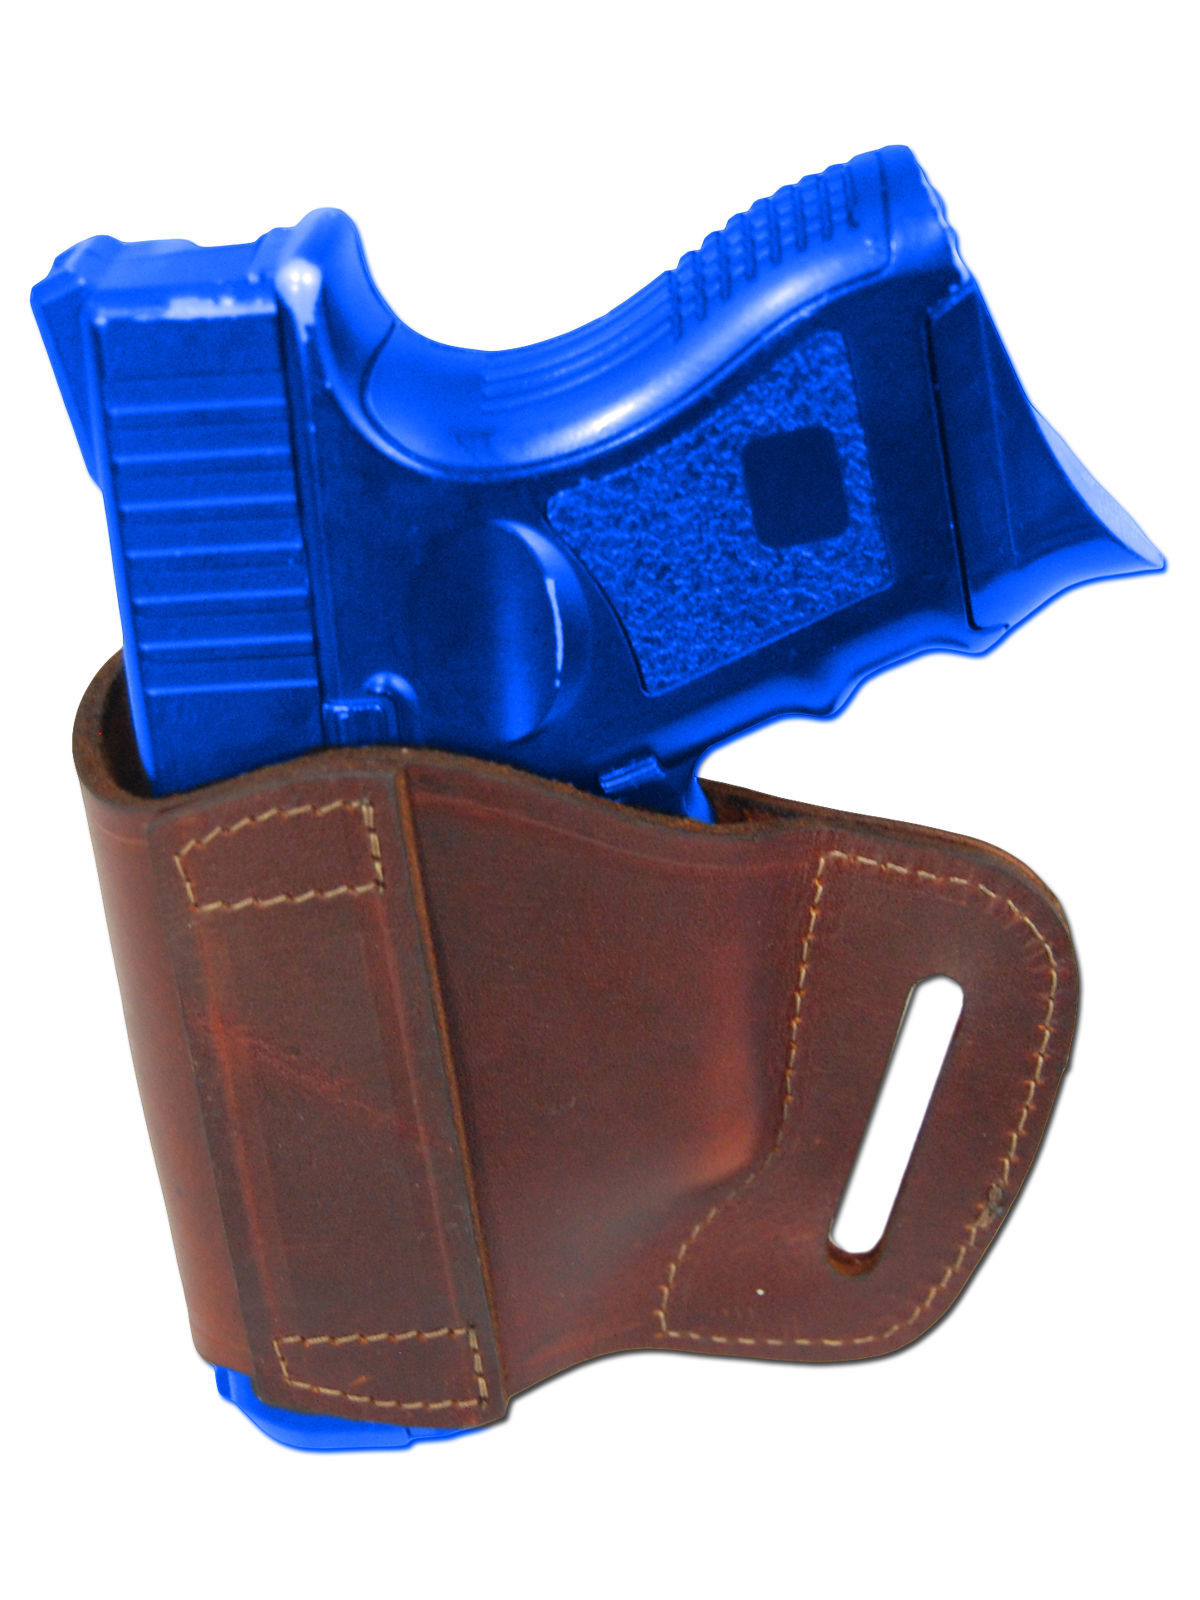 New Barsony Burgundy Leather Yaqui Holster + Mag Pouch Smith&Wesson Comp 9mm 40